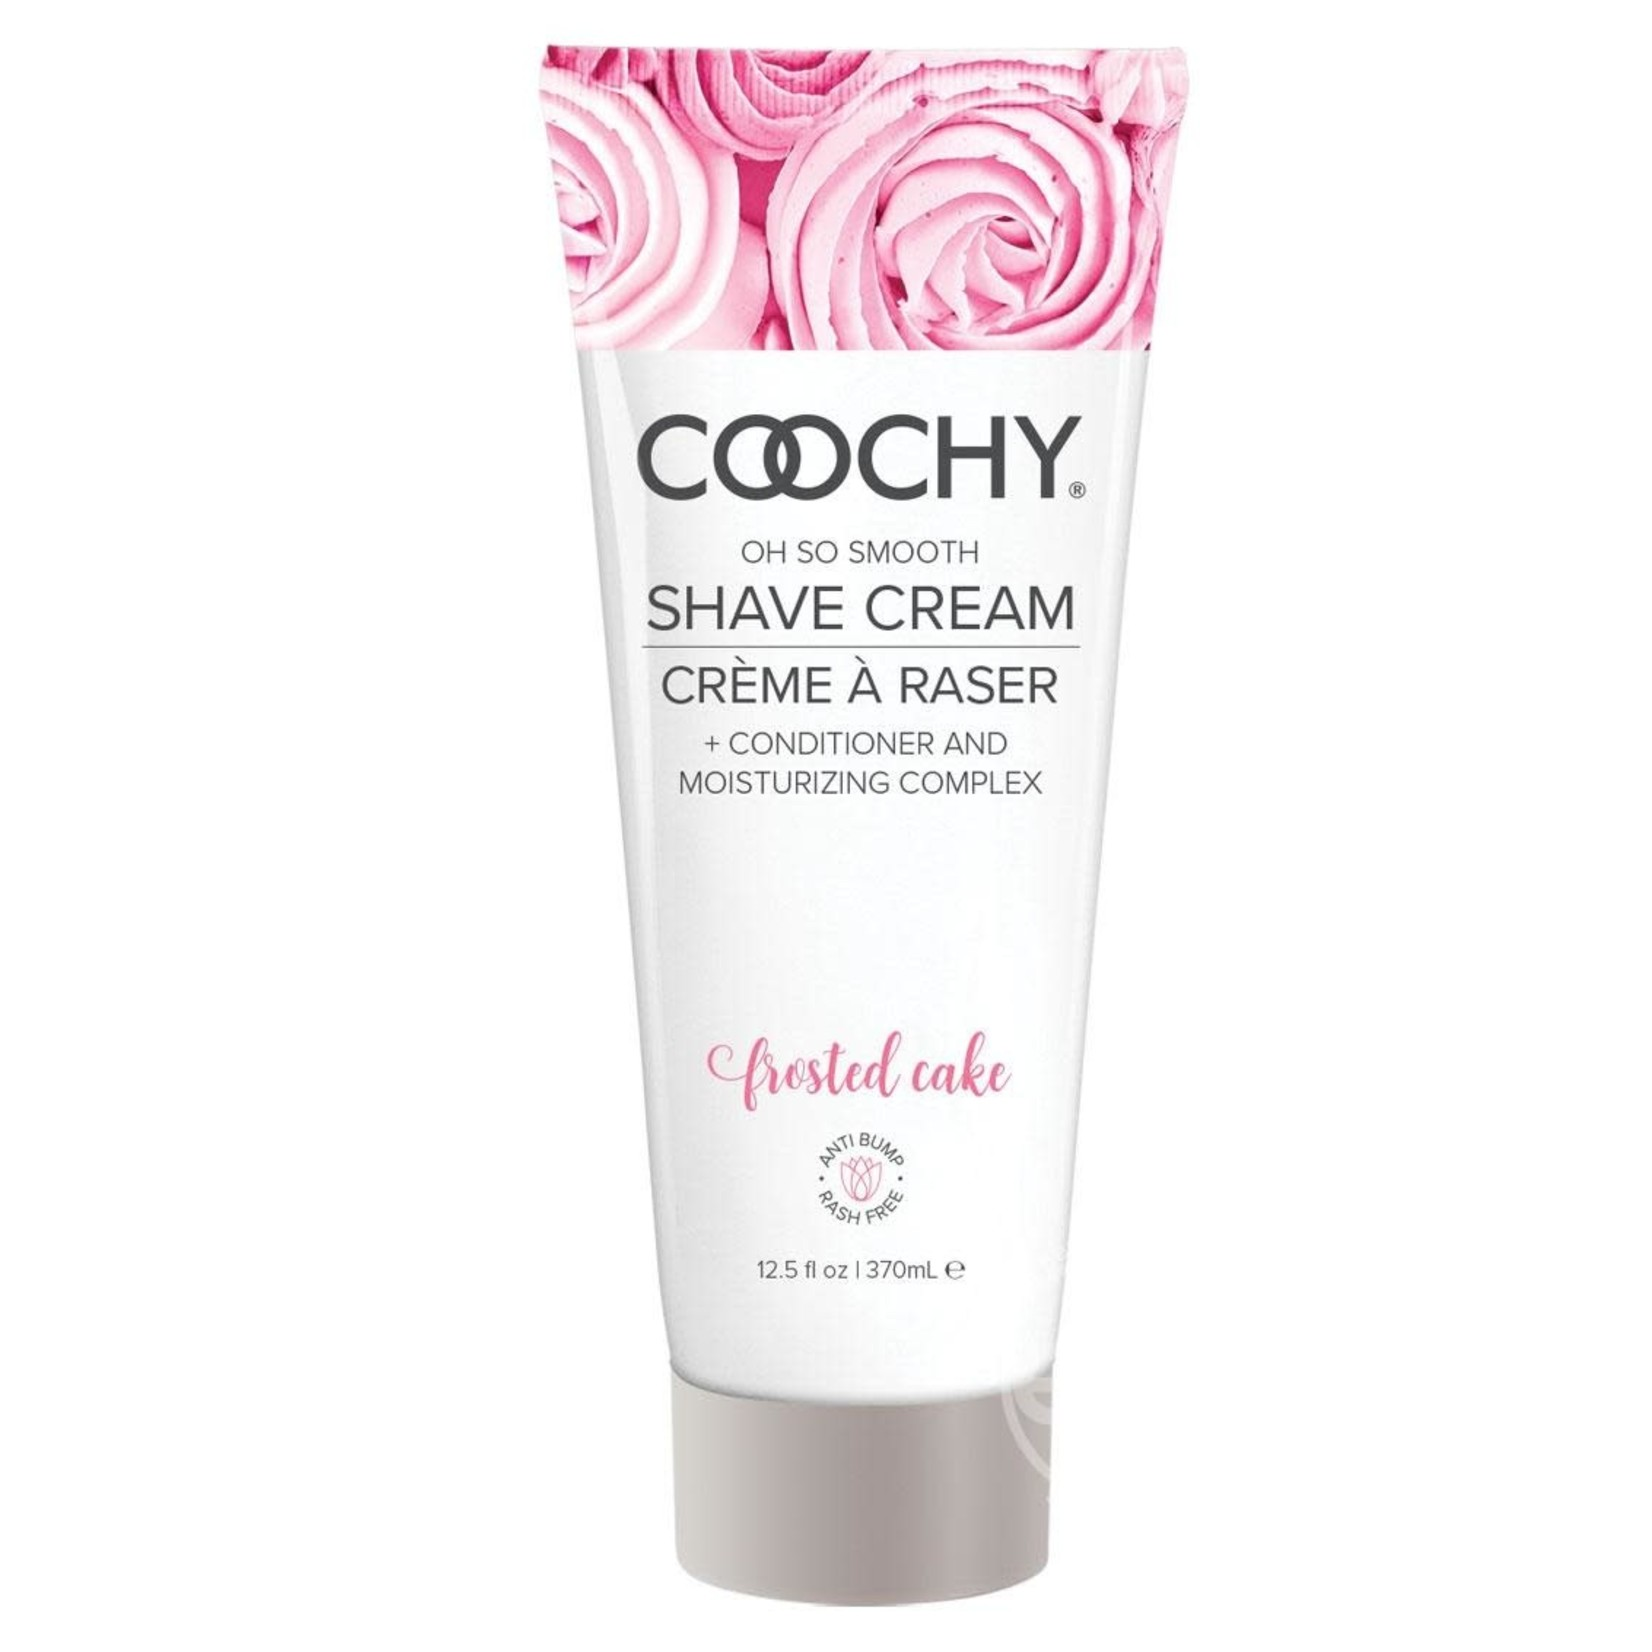 Coochy Shave Cream Frosted Cake 12.5oz